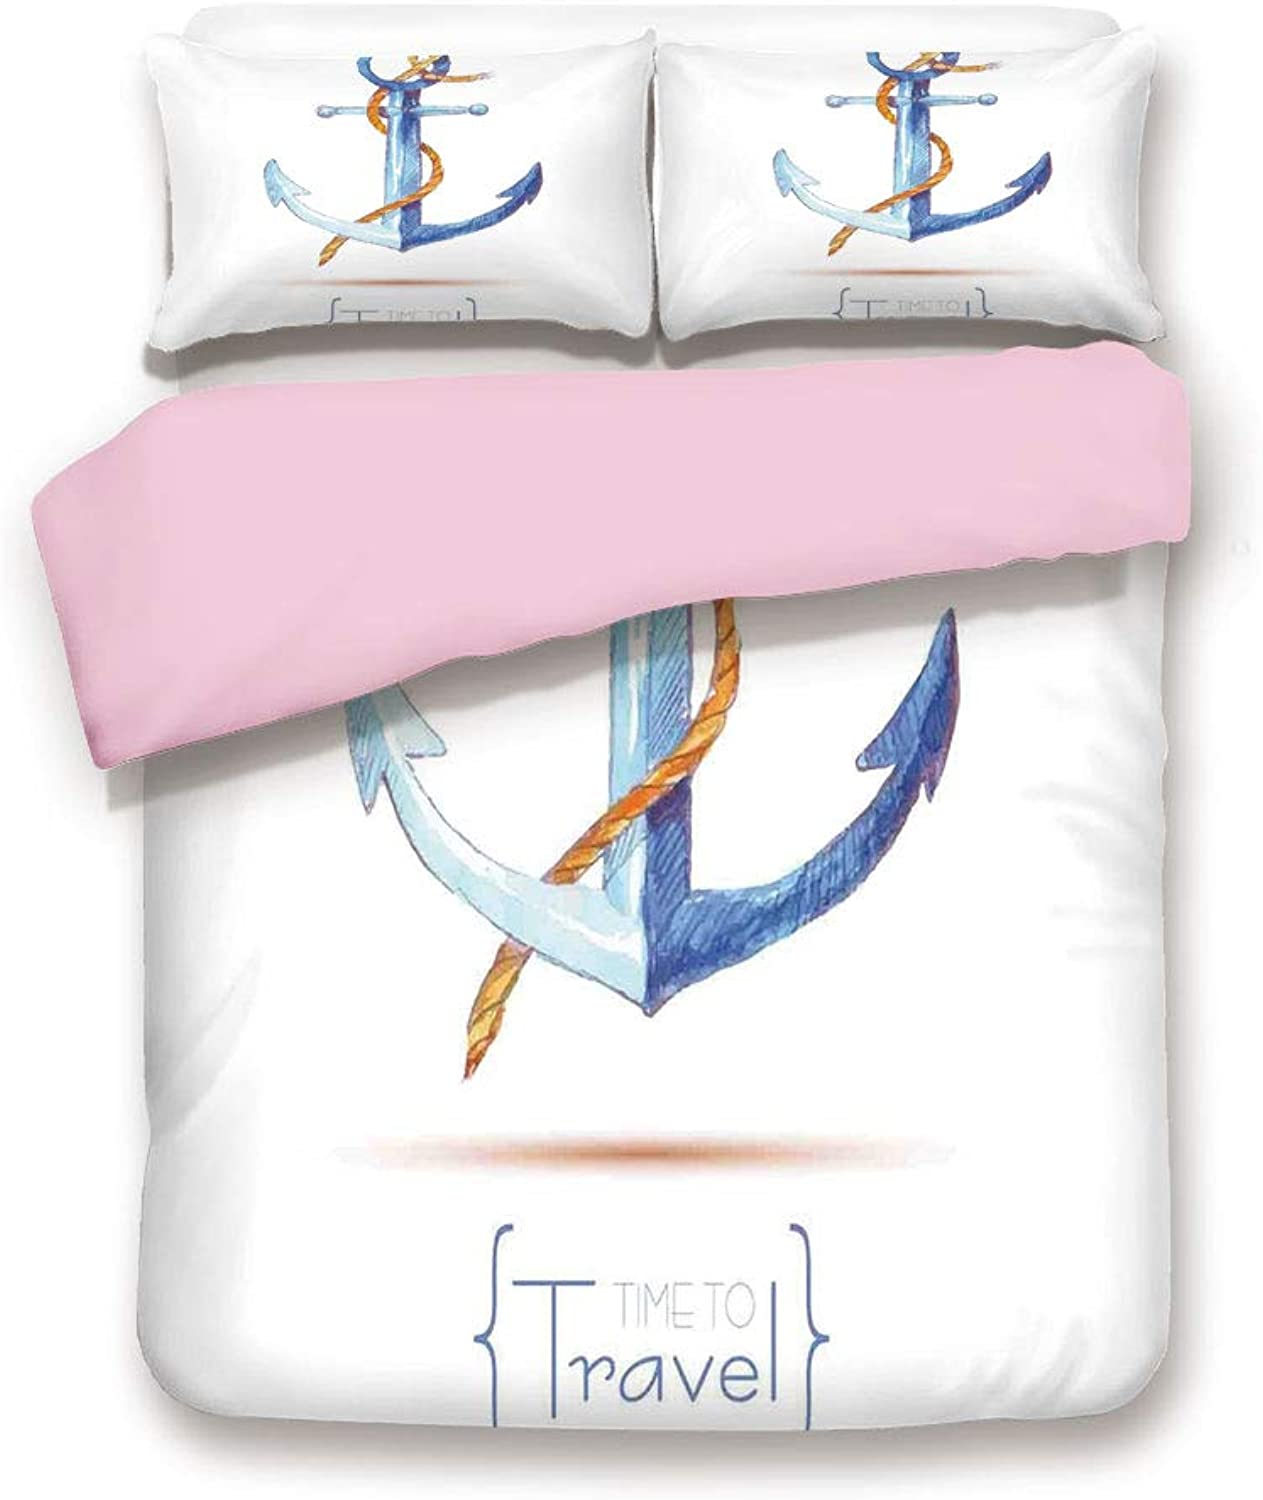 Pink Duvet Cover Set,Queen Size,Watercolors Anchor Rope Time to Travel Naval Classic Sail Emblem Drogue Voyage,Decorative 3 Piece Bedding Set with 2 Pillow Sham,Best Gift For Girls Women,bluee White Br